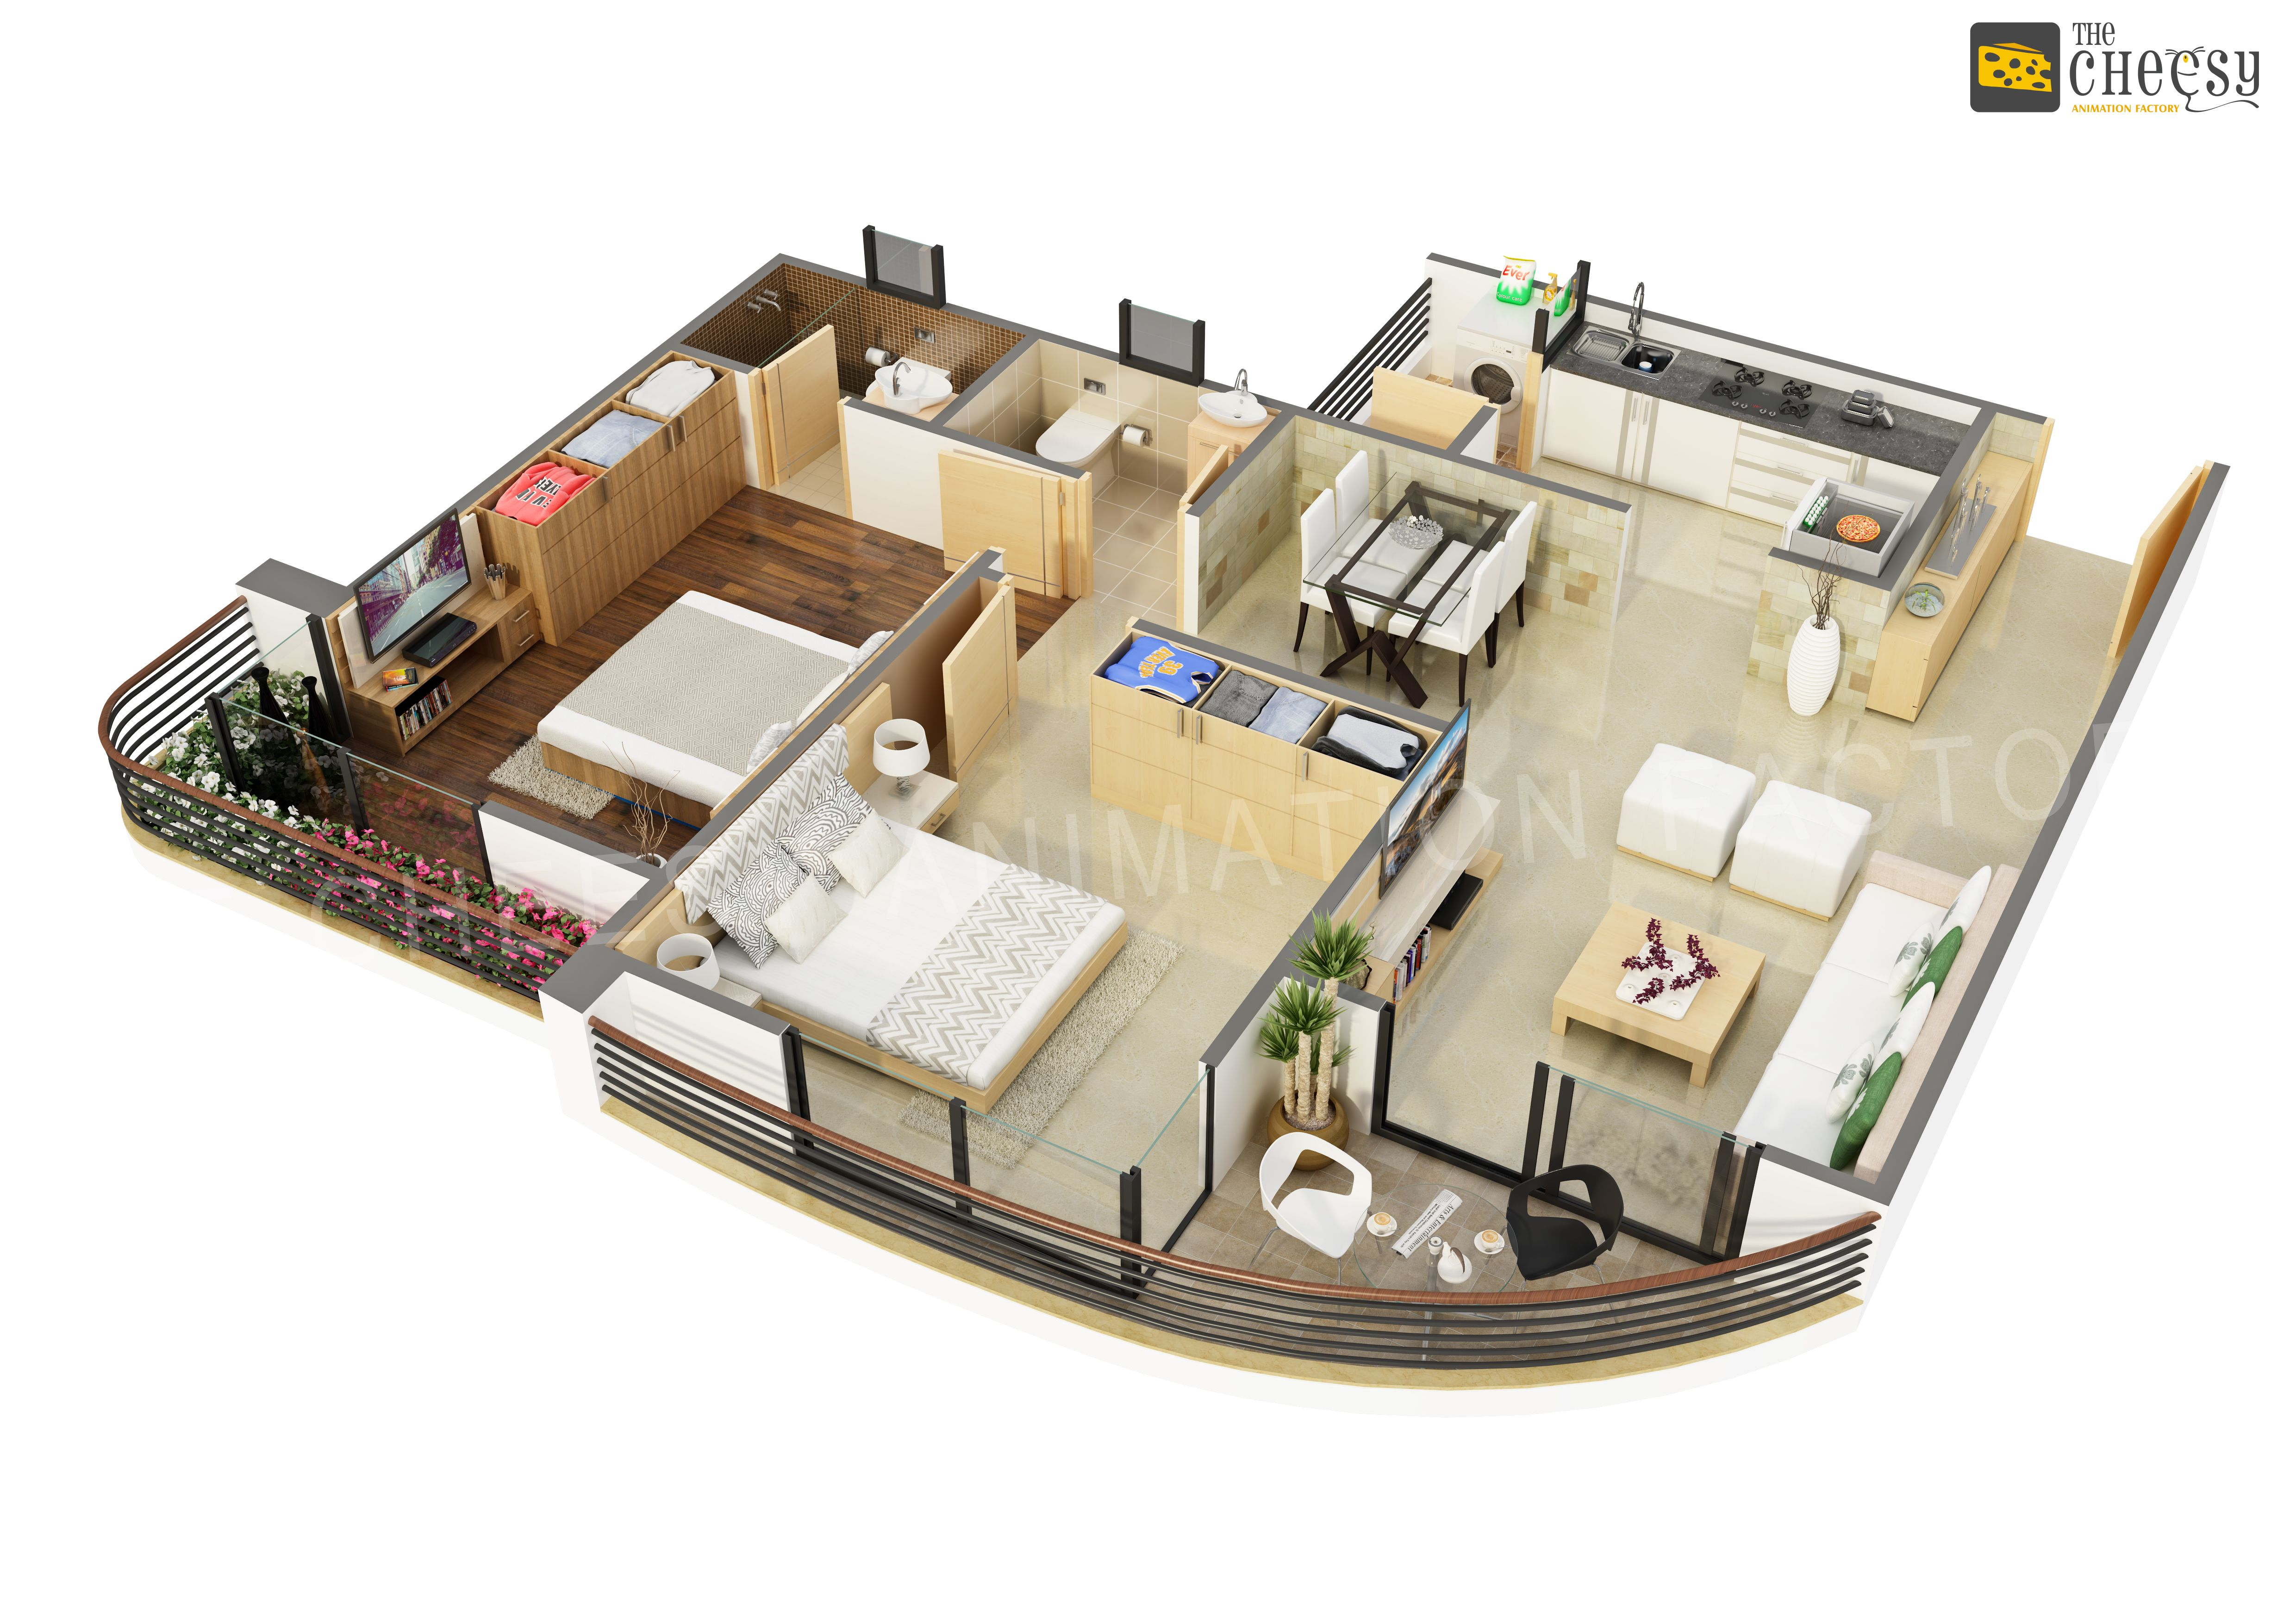 3d Character Animation Cartoon Animation Video Services India House Floor Plans Floor Plans Floor Plan Design